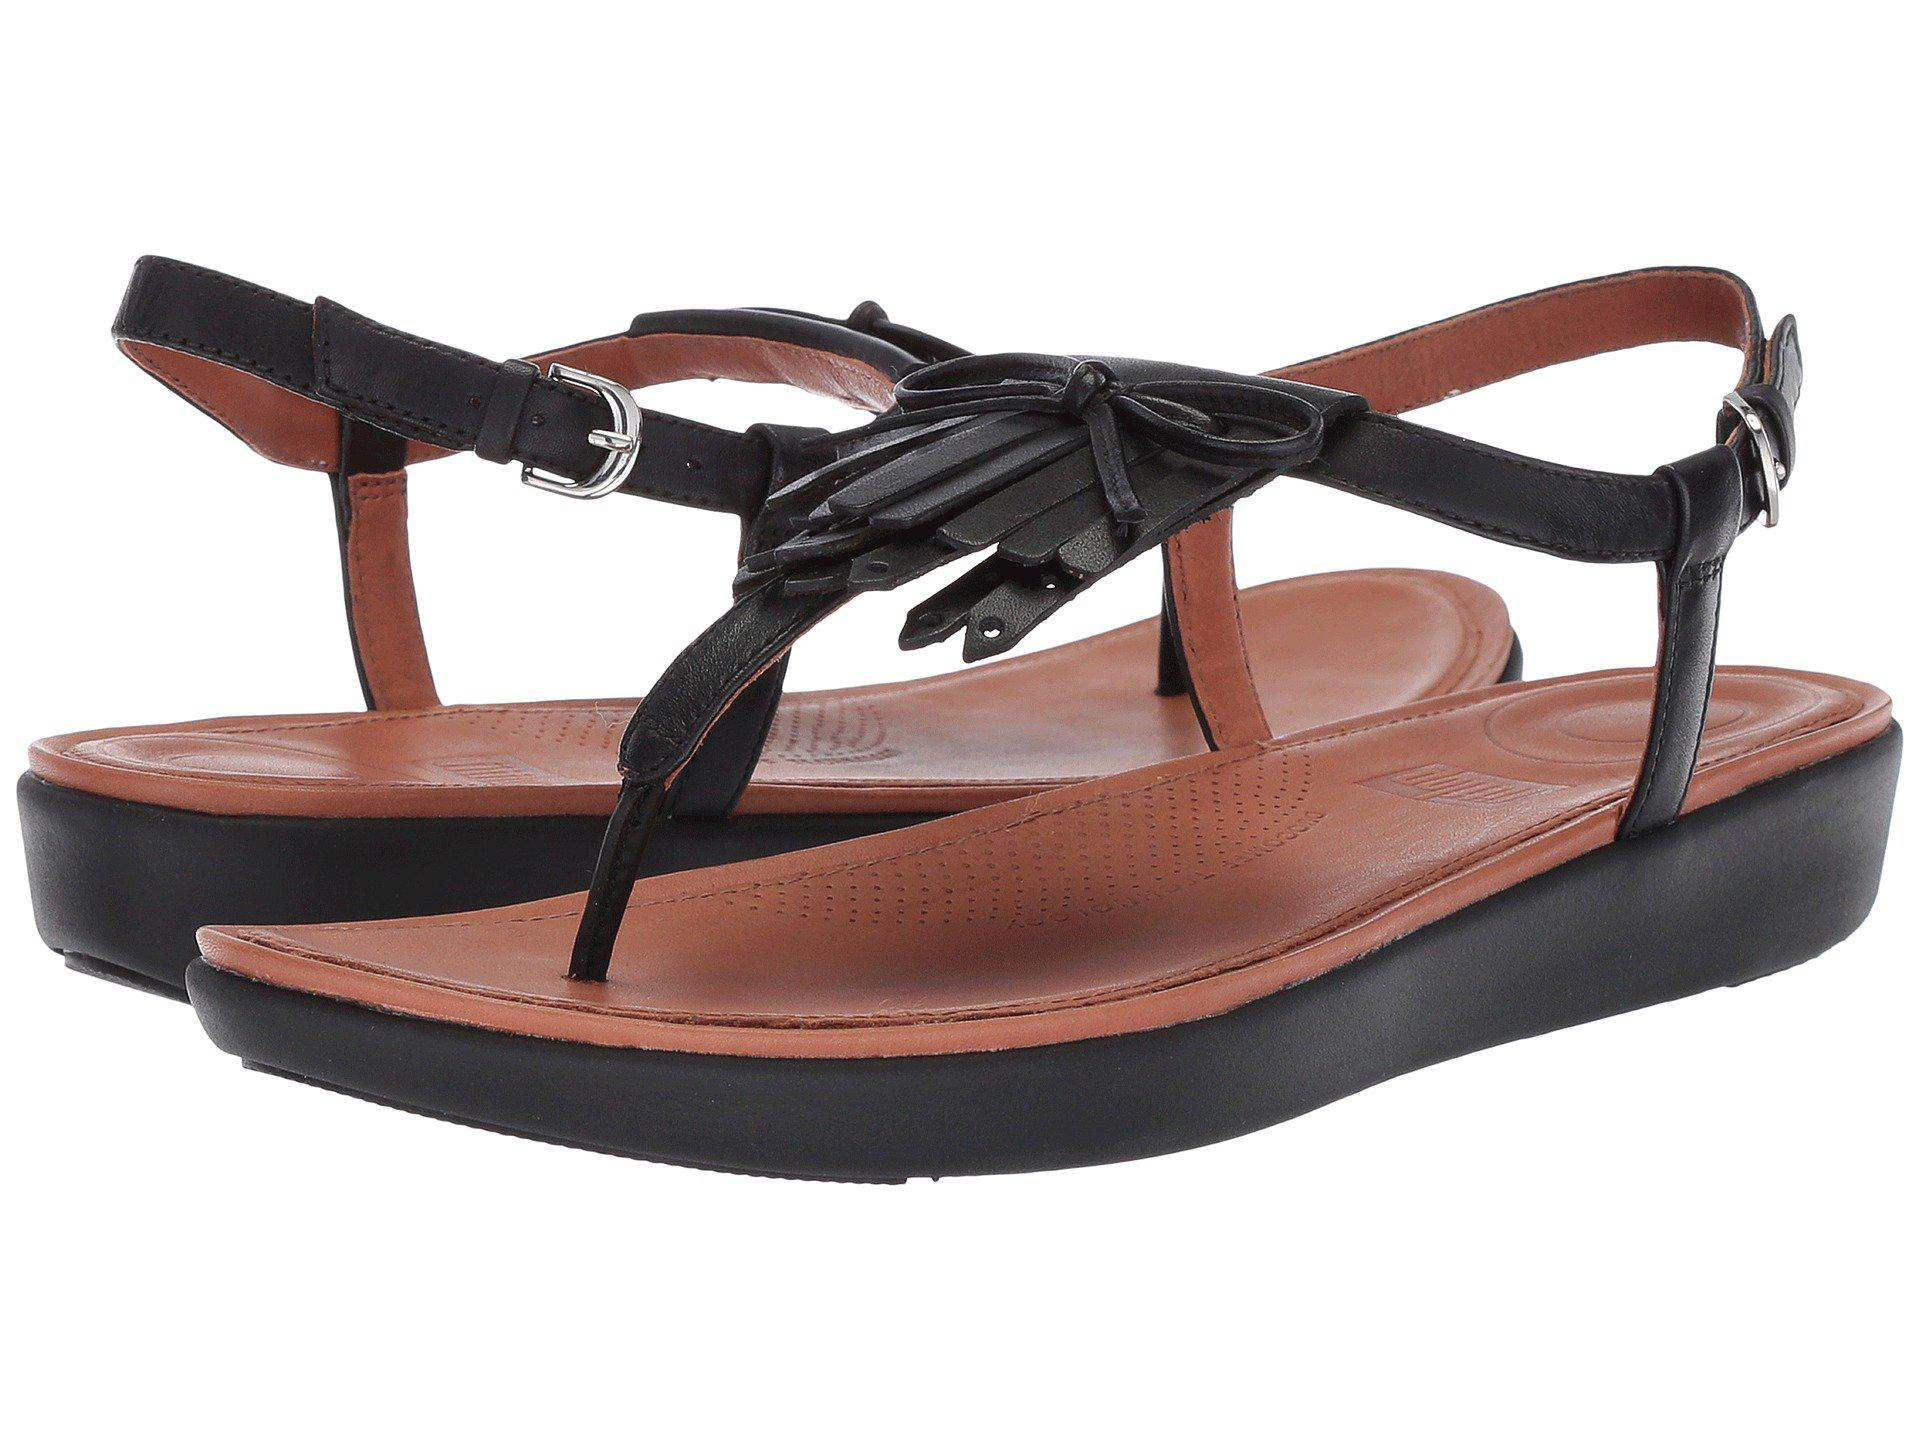 6e7adf9095d5 Gallery. Previously sold at  6PM · Women s Thong Sandals ...